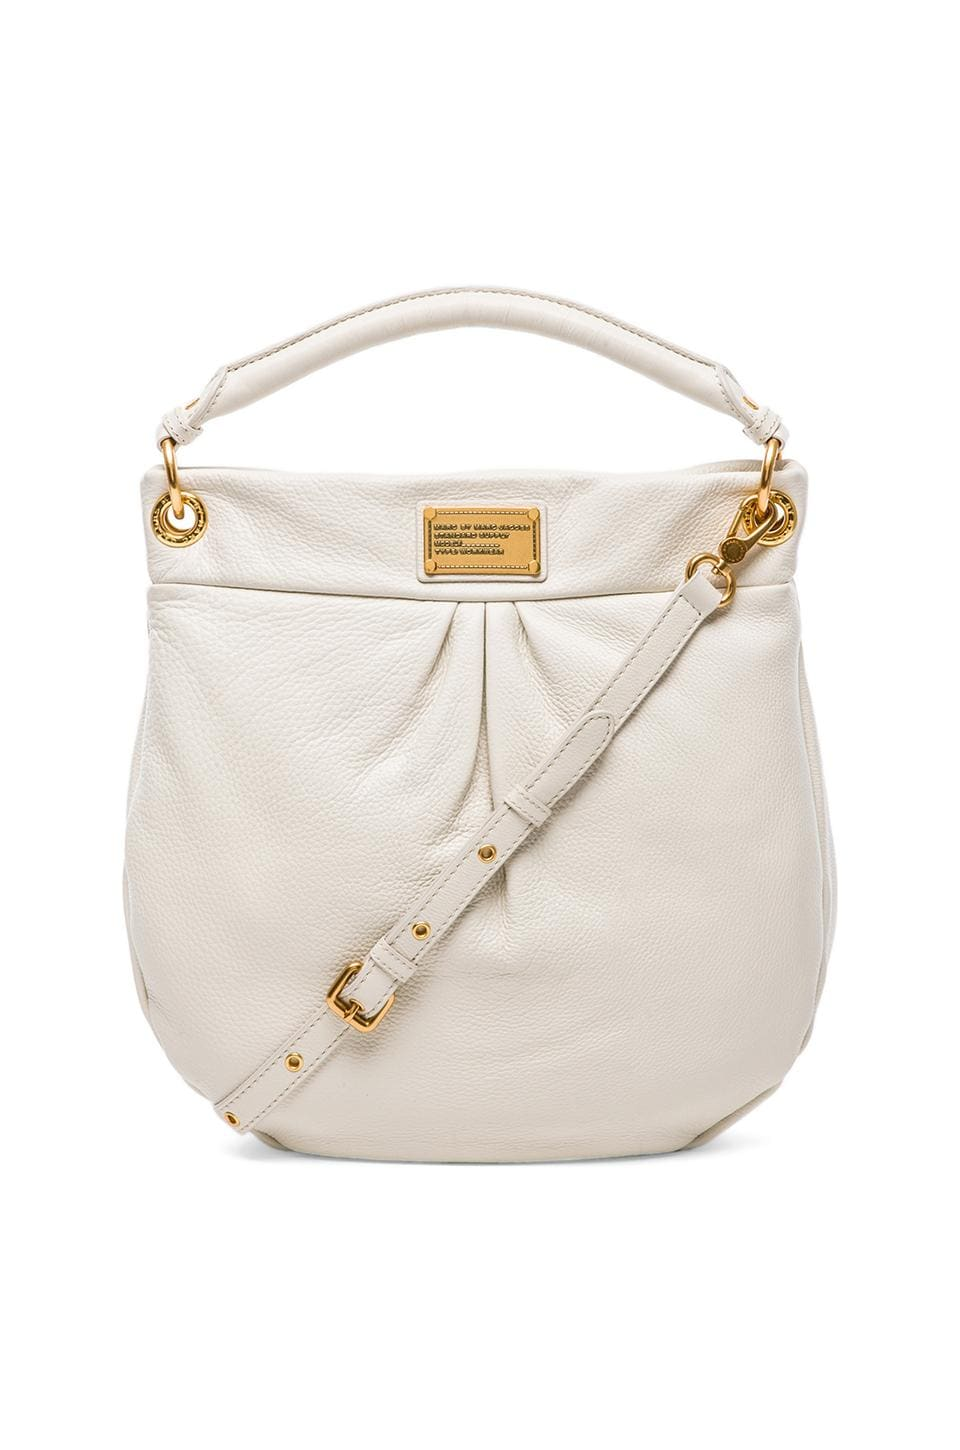 Marc by Marc Jacobs Classic Q Hillier Hobo in White Birch